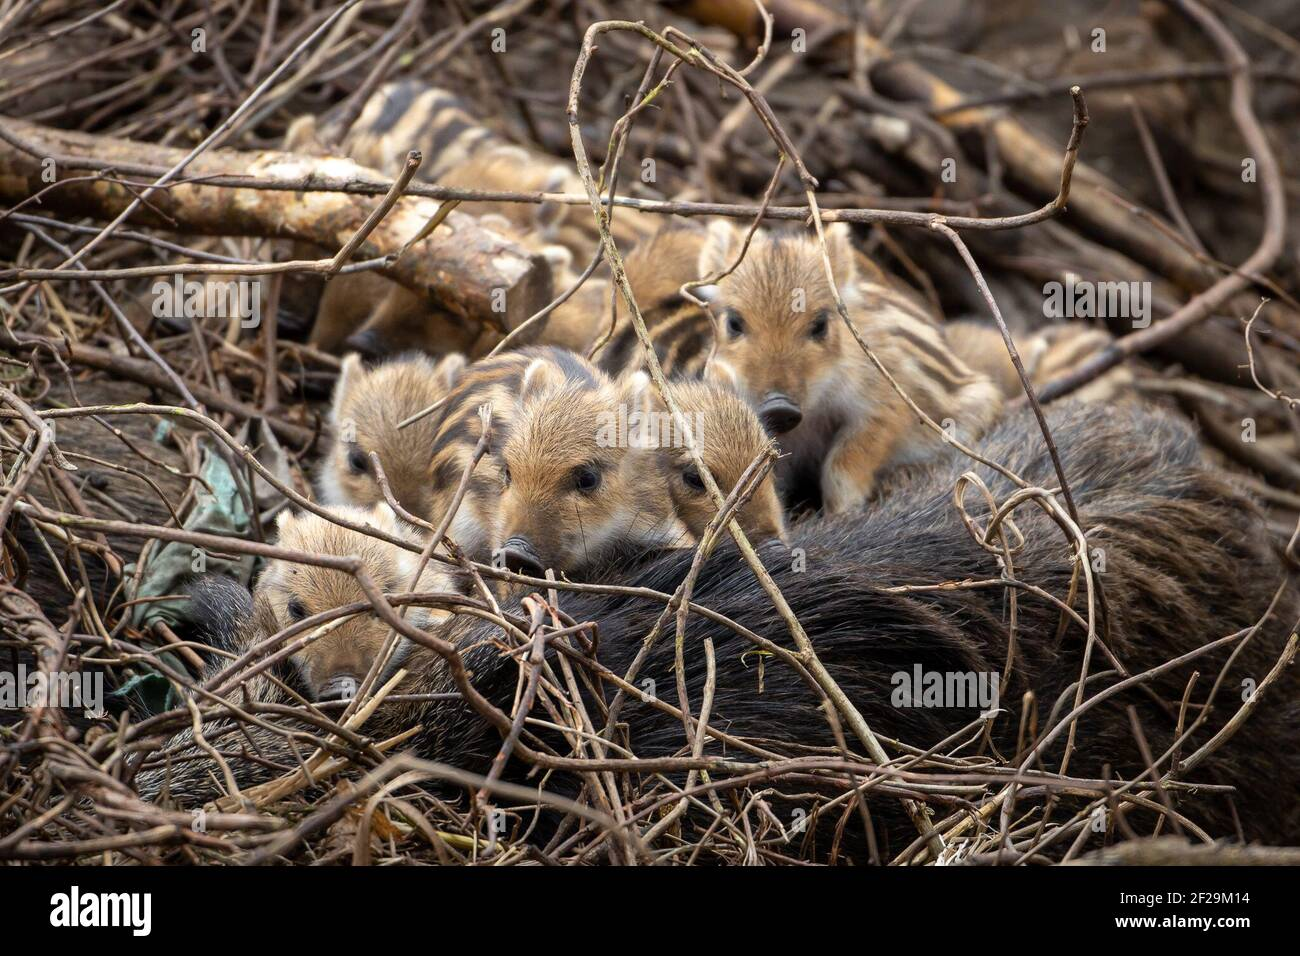 Animals reasons for hunting 5 Animals